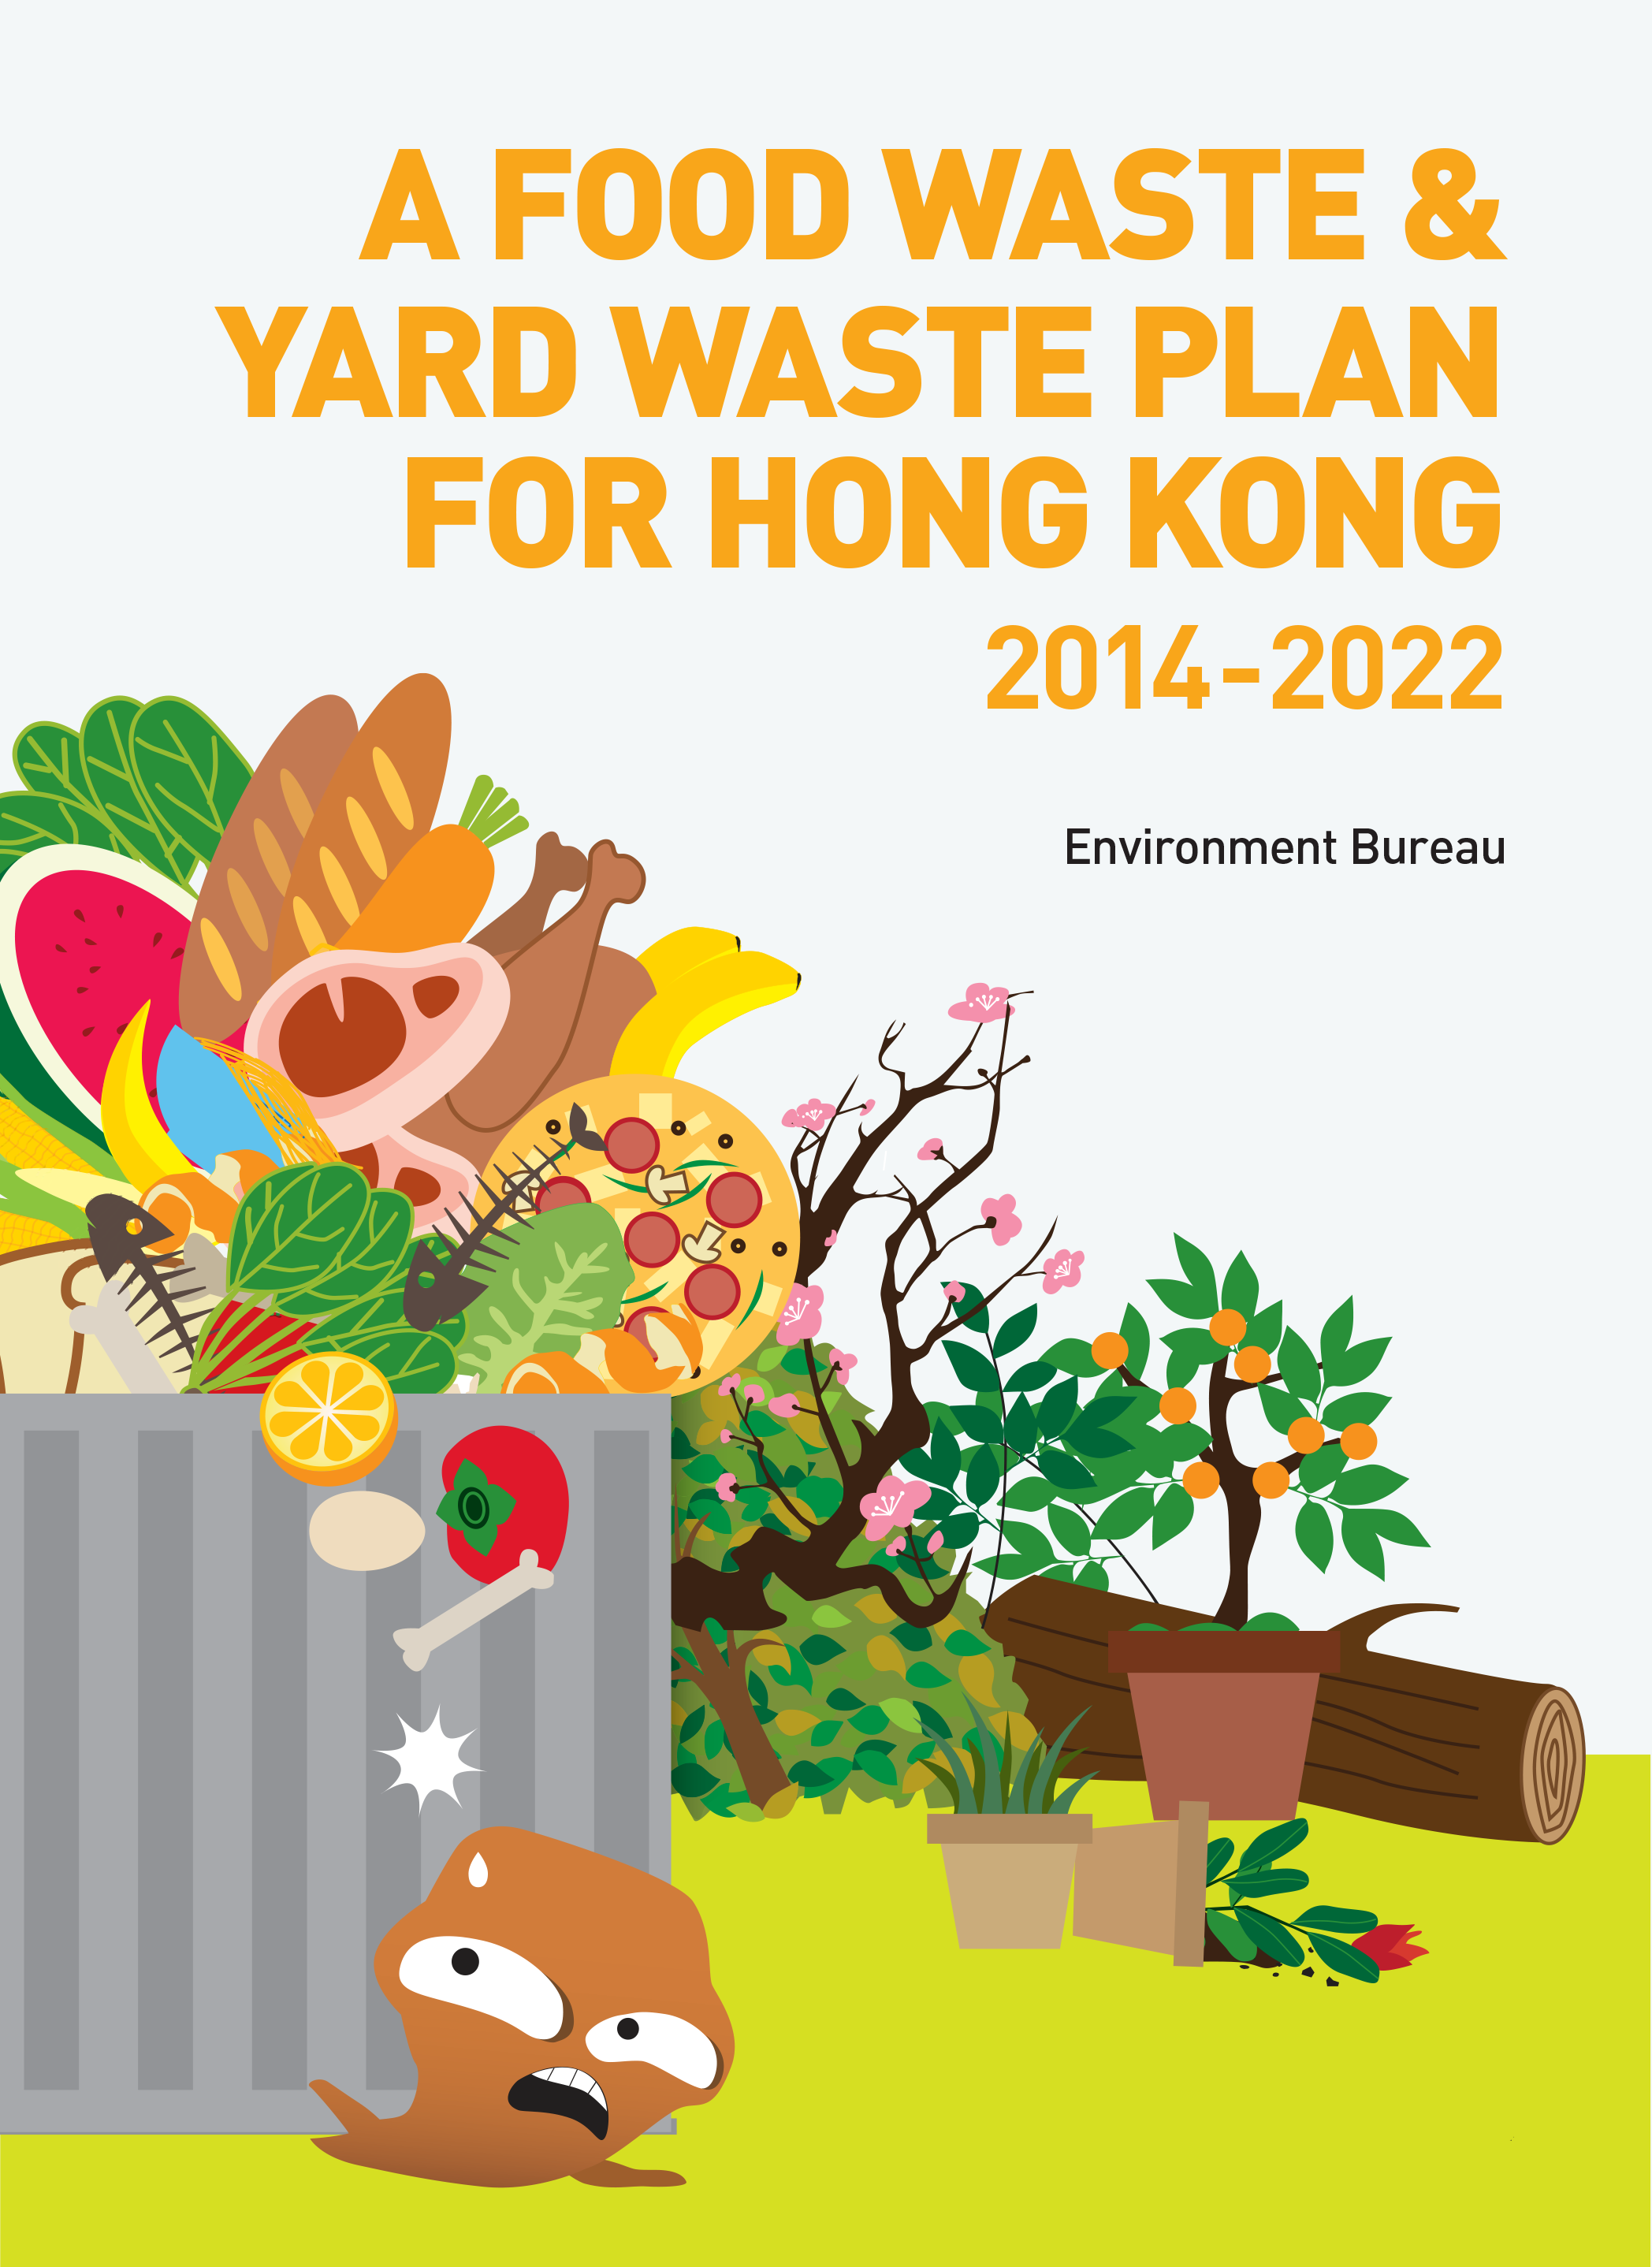 A Food Waste & Yard Waste Plan for Hong Kong 2014 - 2022